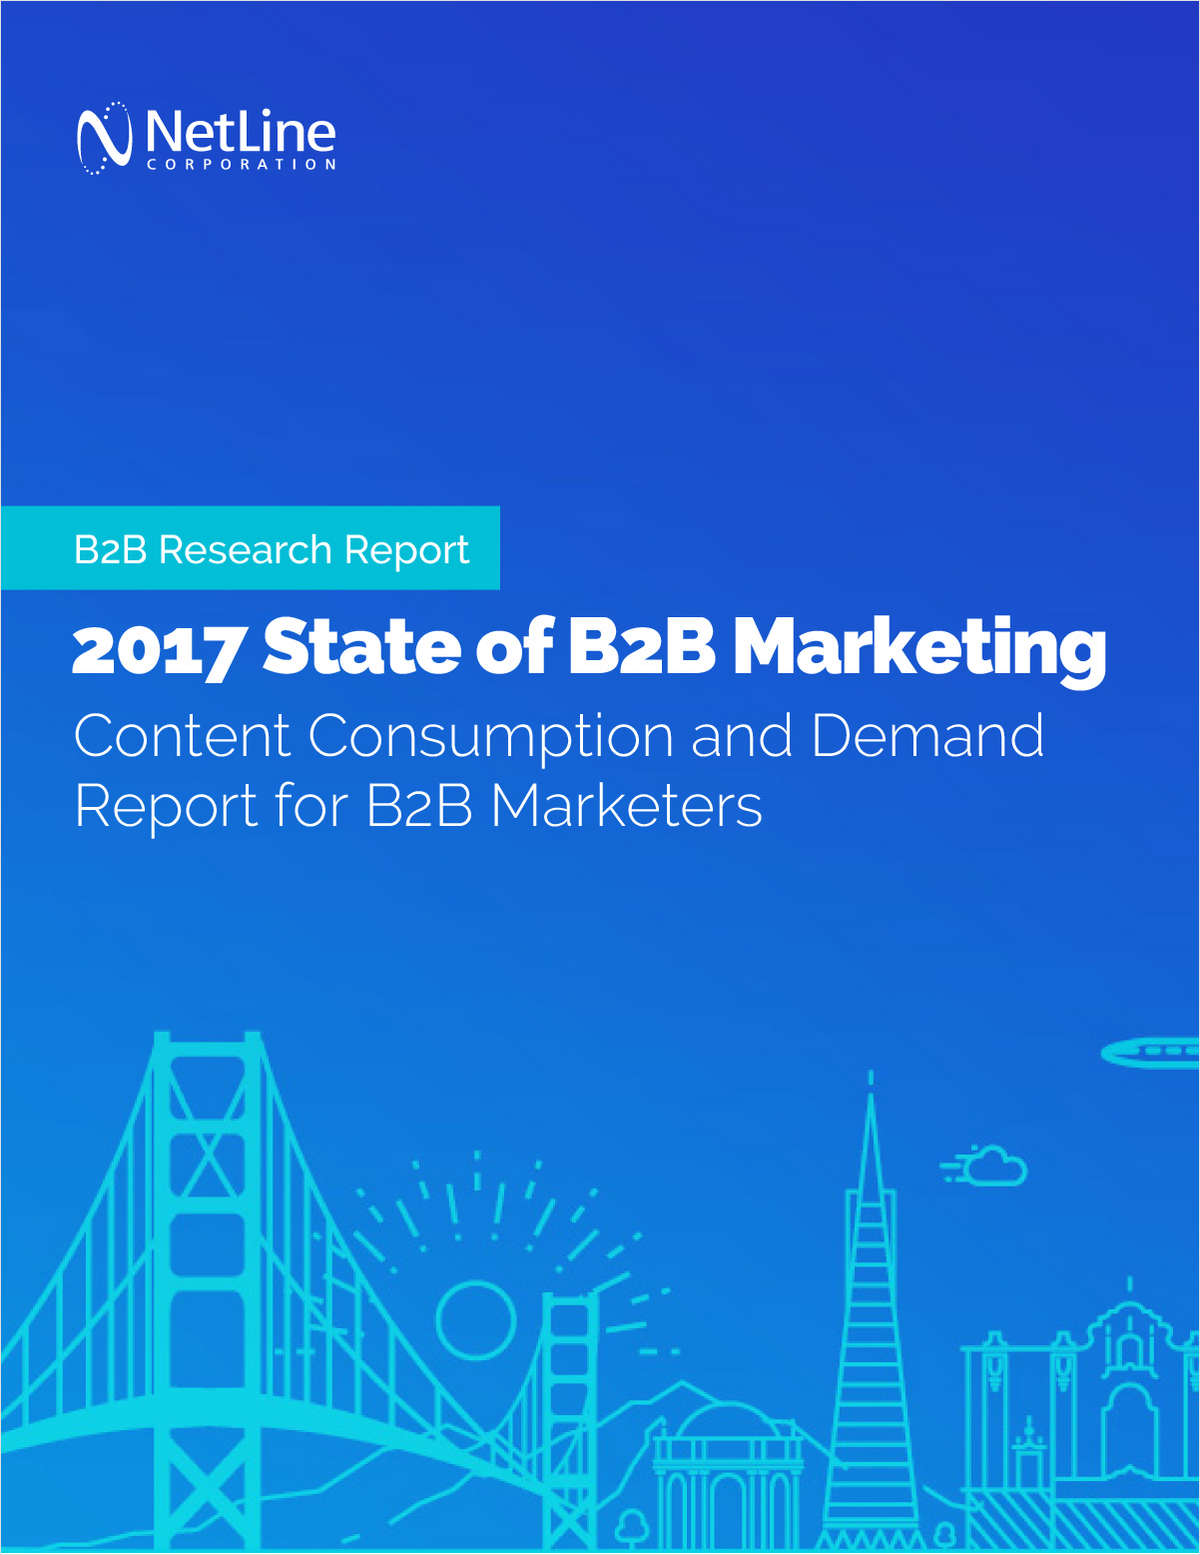 2017 State of B2B Marketing Content Consumption and Demand Report for B2B Marketers